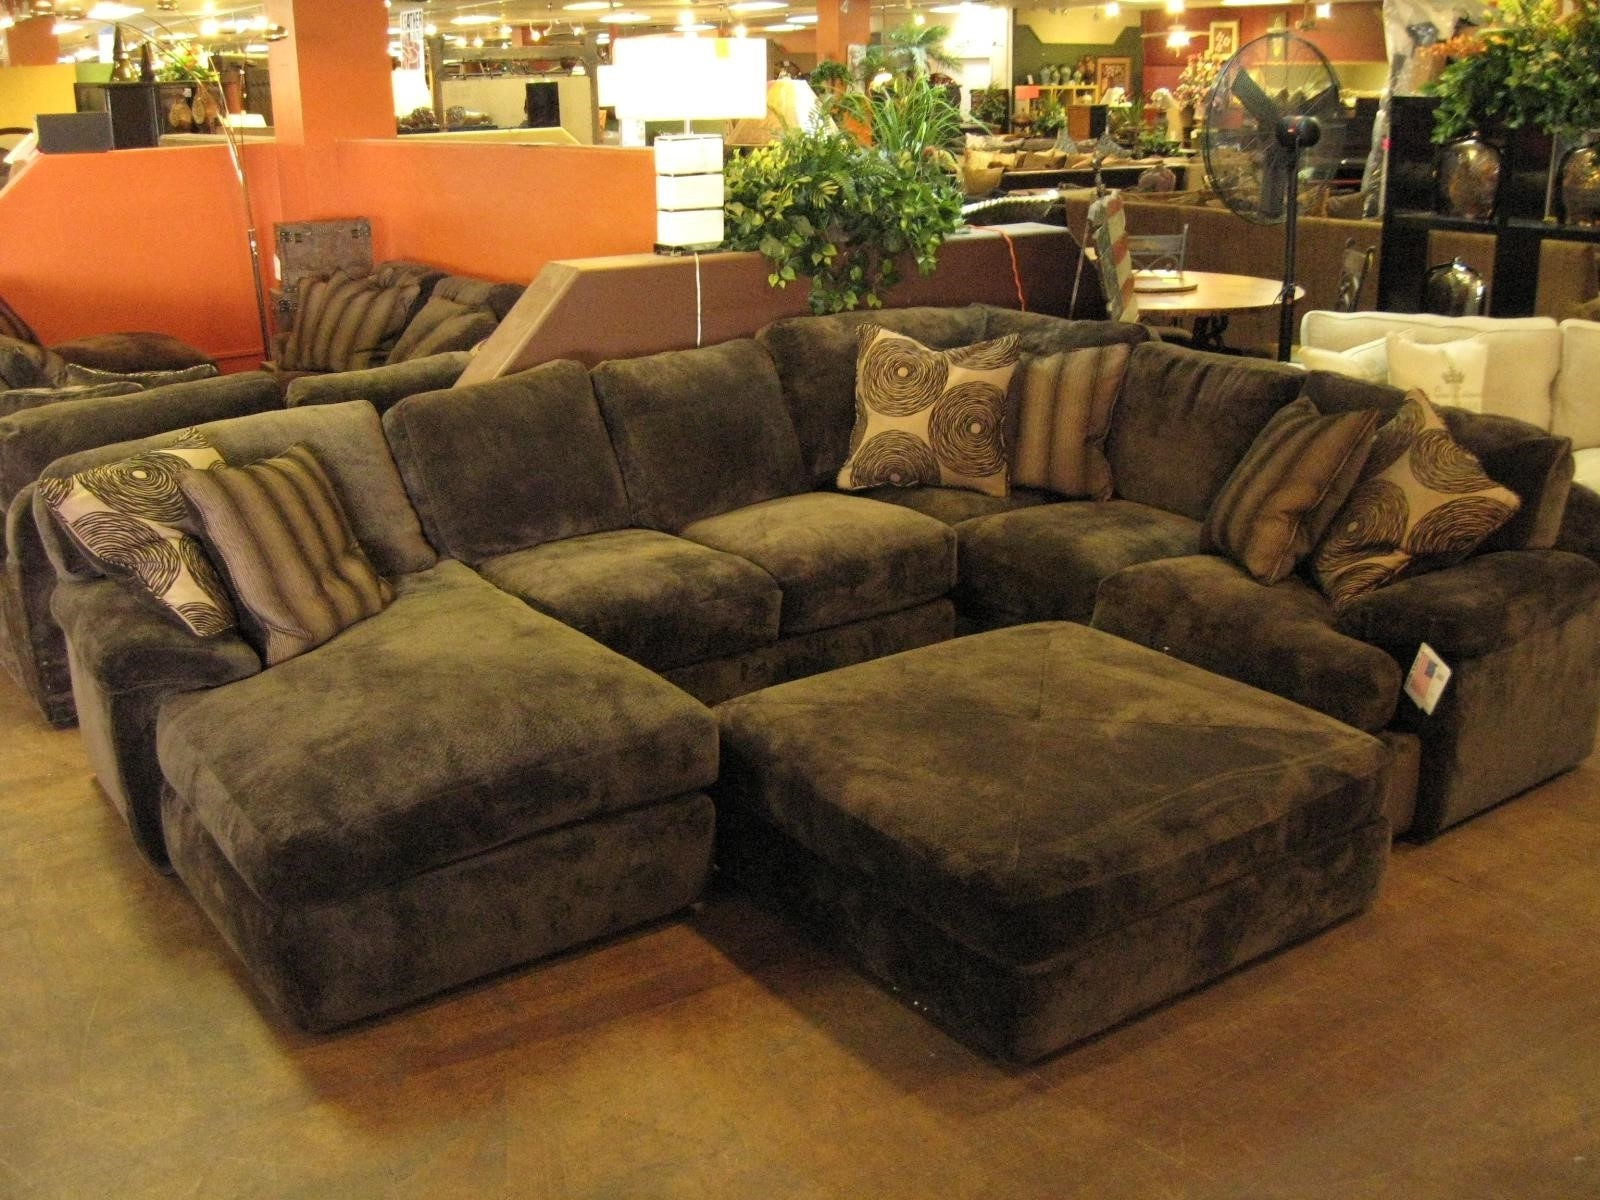 Sofas Marvelous Brown Sectional Couch Cheap For Large Sofa With Inside Trendy Sofas With Large Ottoman (View 10 of 15)